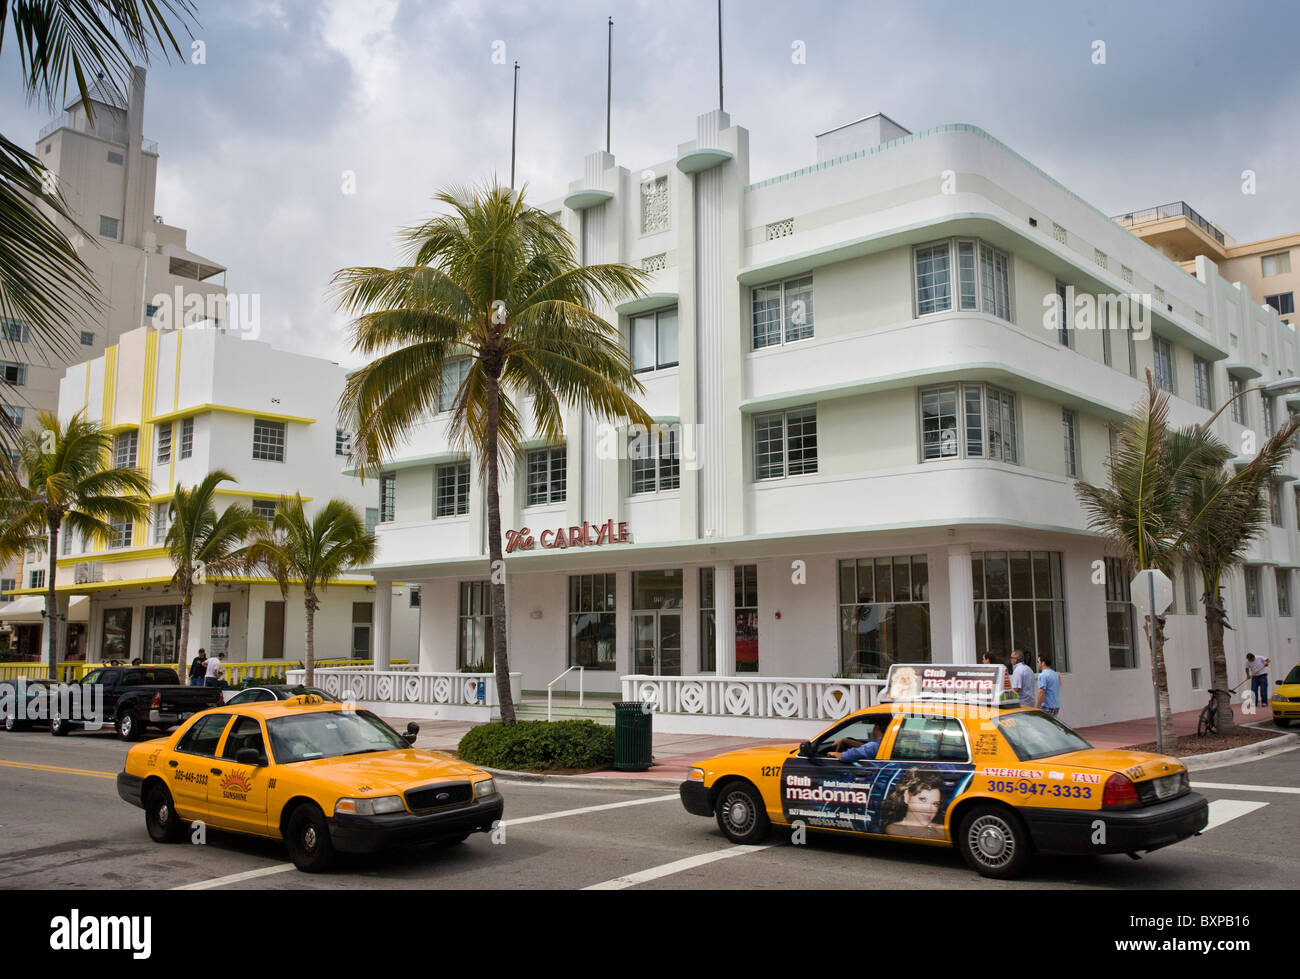 Yellow taxi cabs by The Carlyle condo on Ocean Drive, South Beach, Miami, Florida, USA - Stock Image